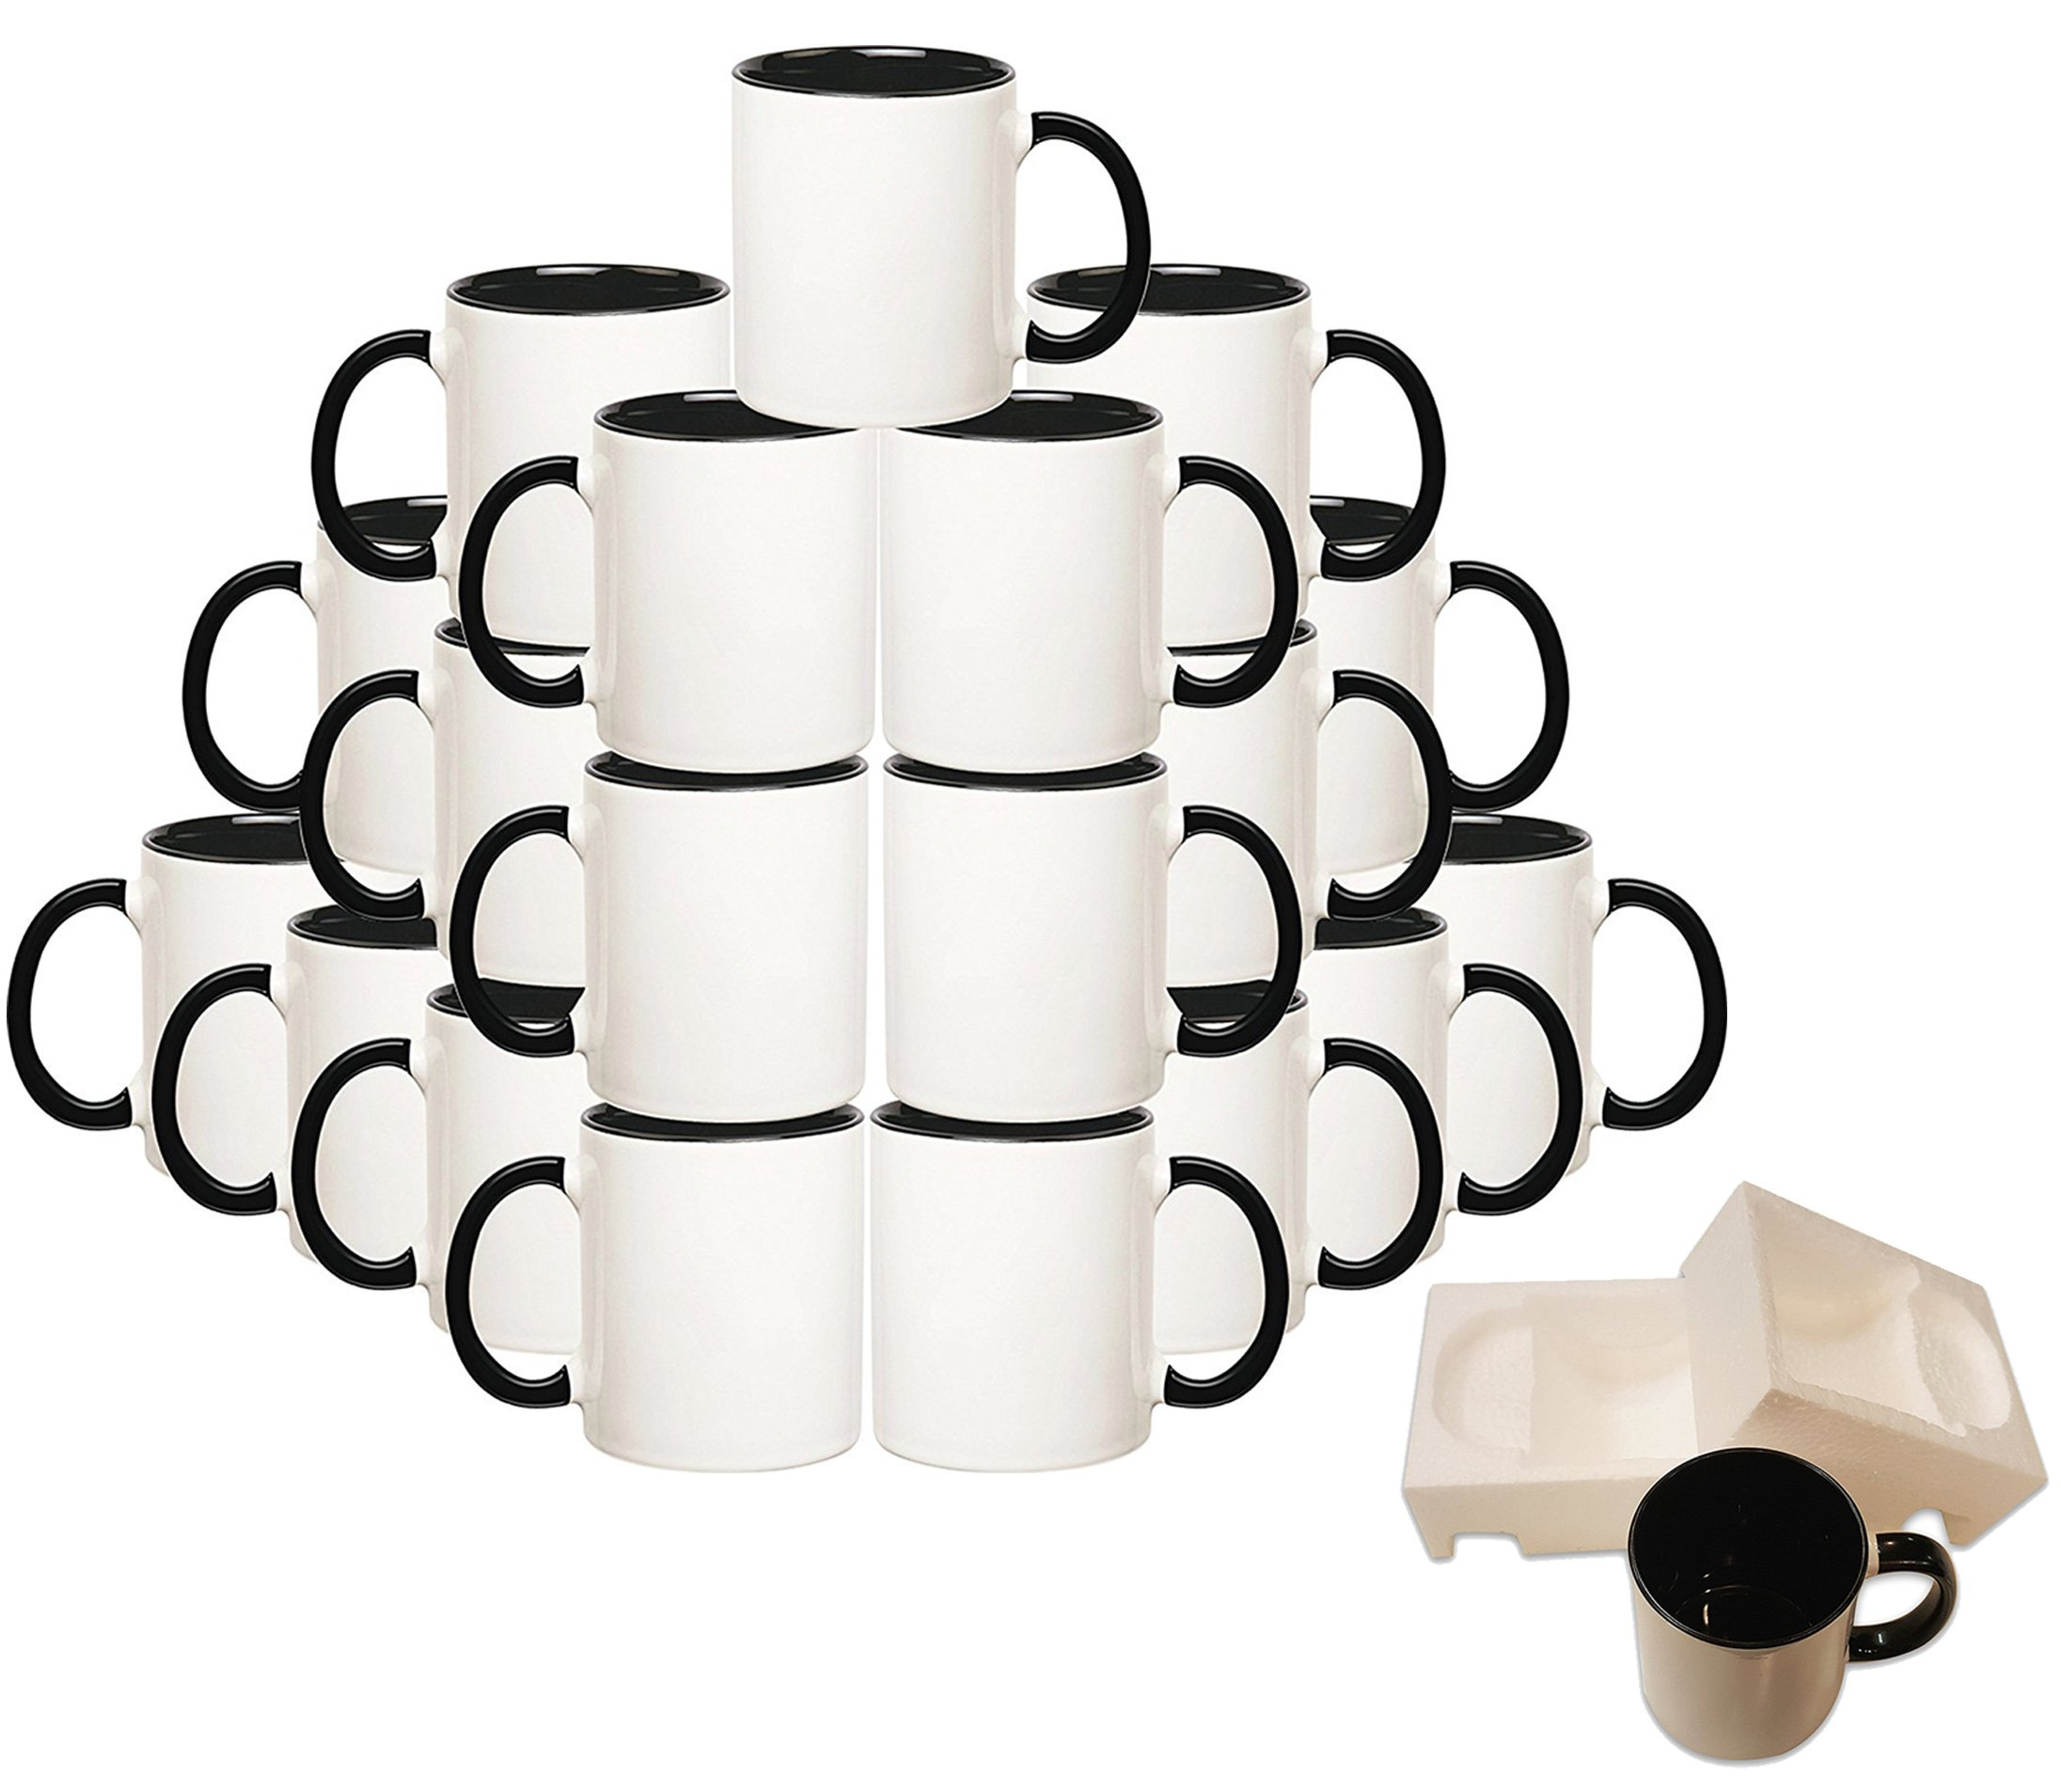 owndis 36-Piece Double Sublimation Coated Ceramic Mug, 11 Oz, Blank White & Black MUG-Case-36-Black